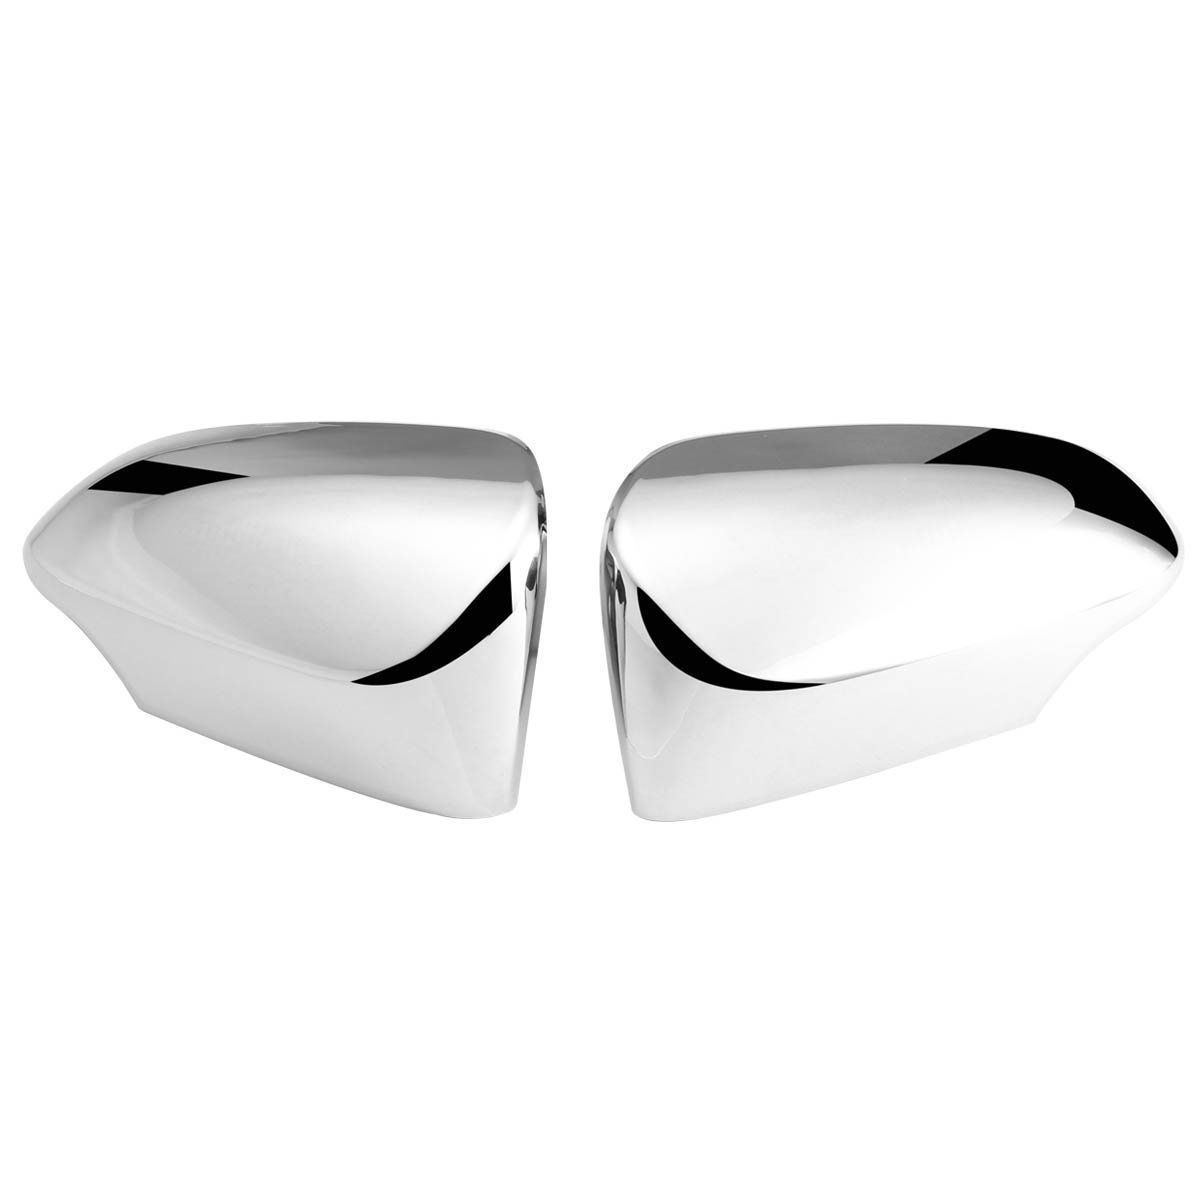 SIDE MIRROR COVERS FOR TATA INDICA (SET OF 2PCS)